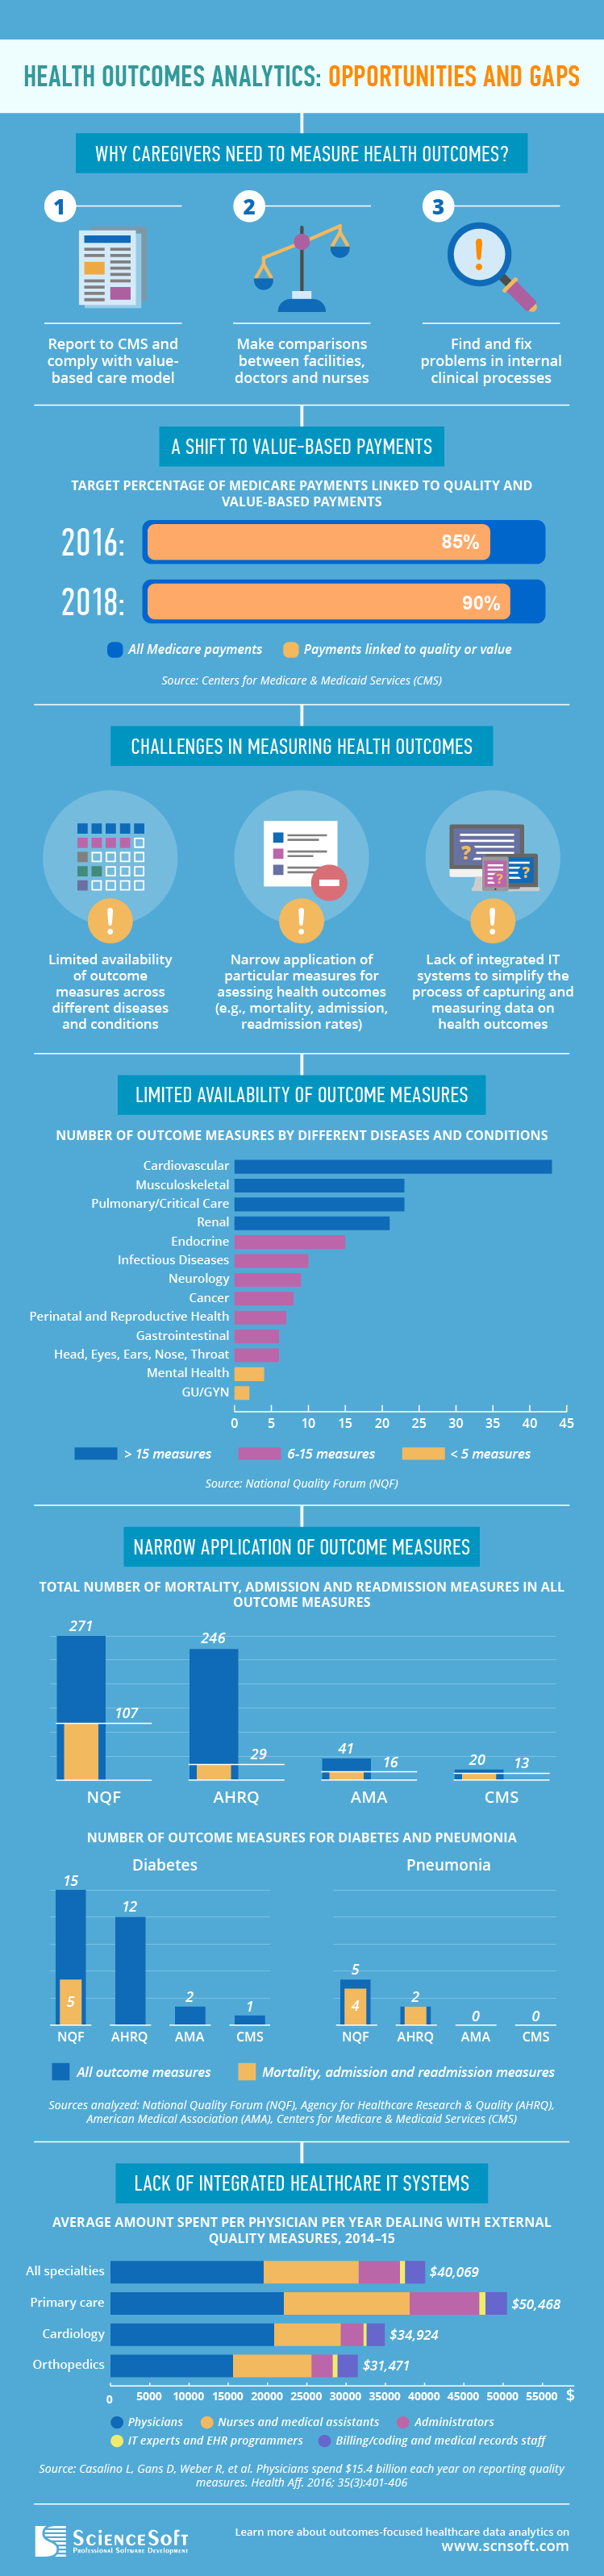 Health outcomes analytics - Infographic